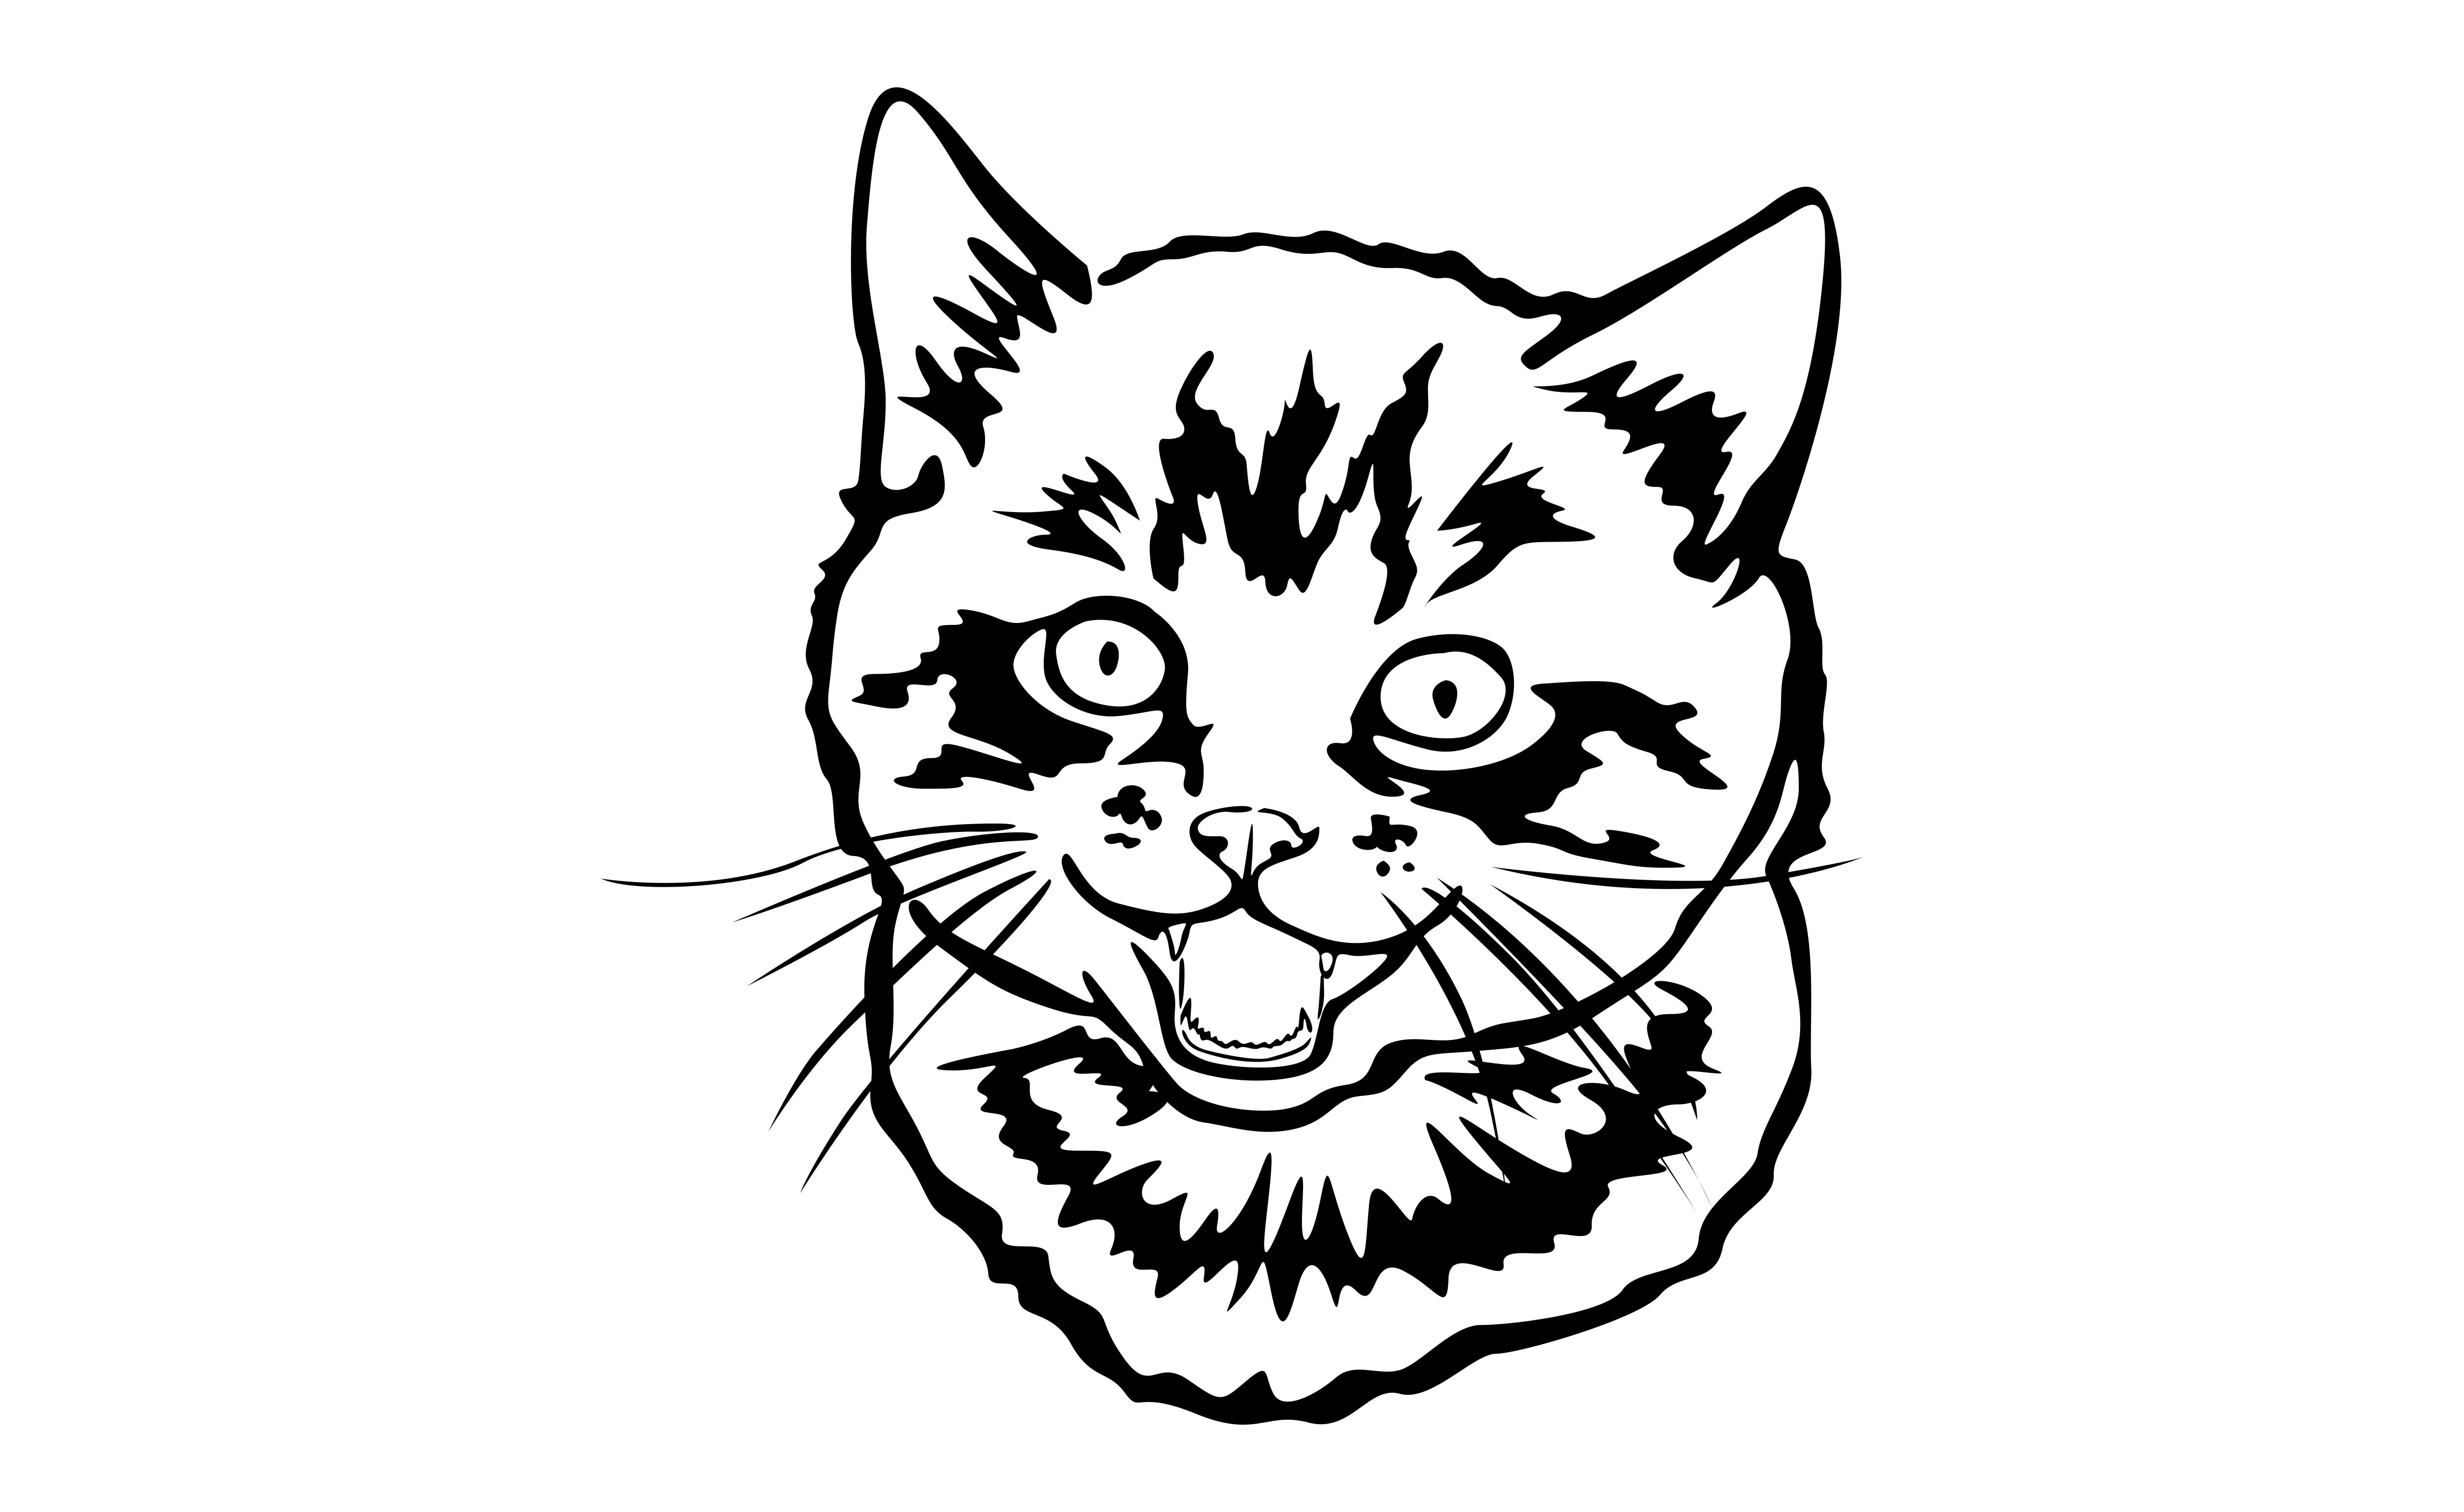 Download Free Cute Face Cat With Black Line Art Style Graphic By Arief Sapta for Cricut Explore, Silhouette and other cutting machines.